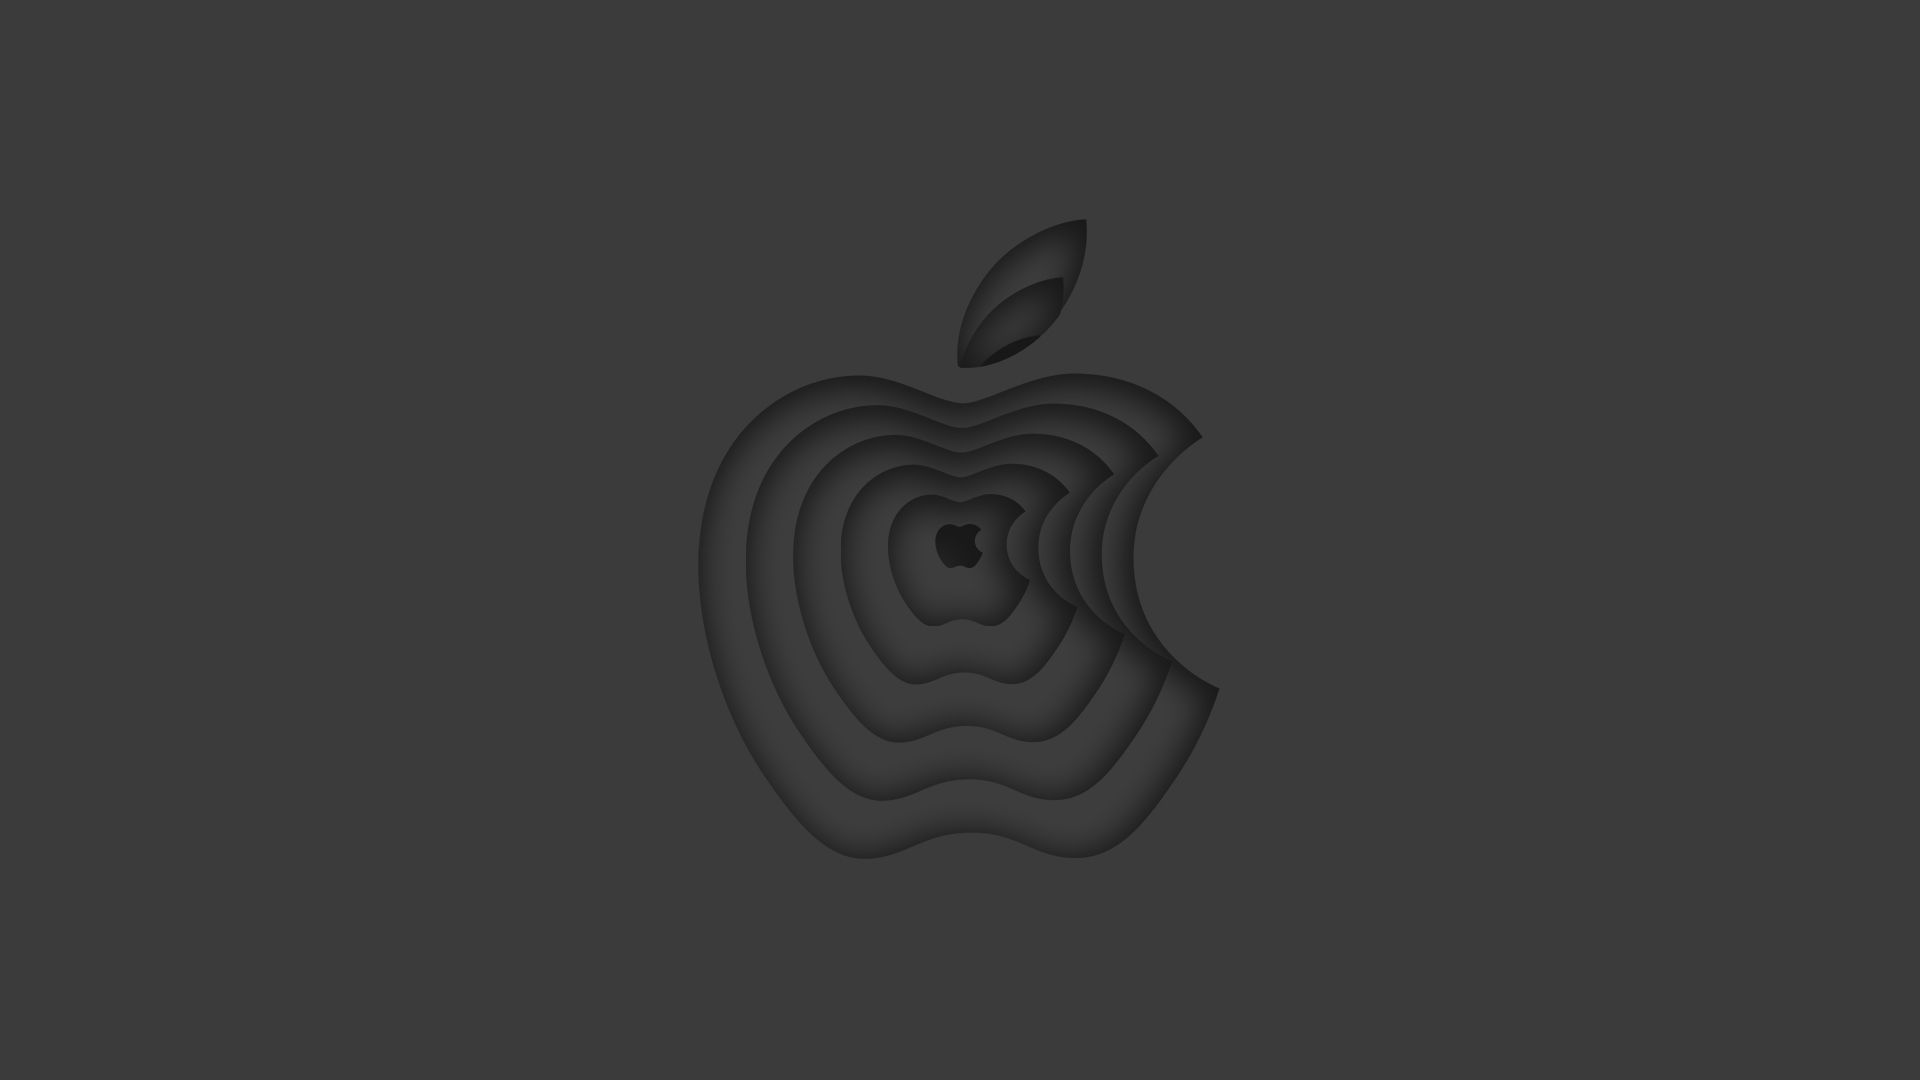 Illustration of a receding Apple logo